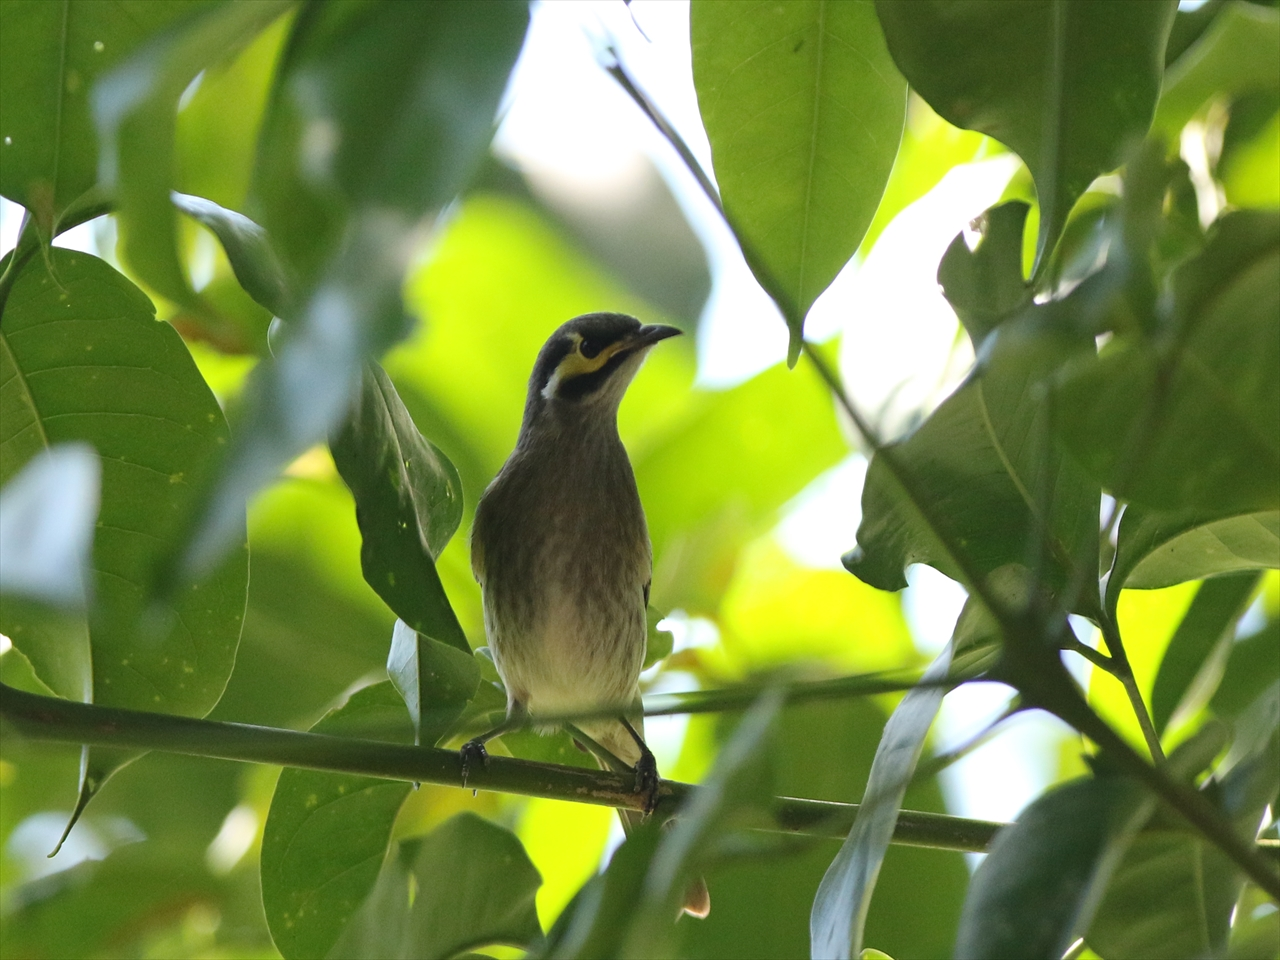 Yellowfaced_honeyeater